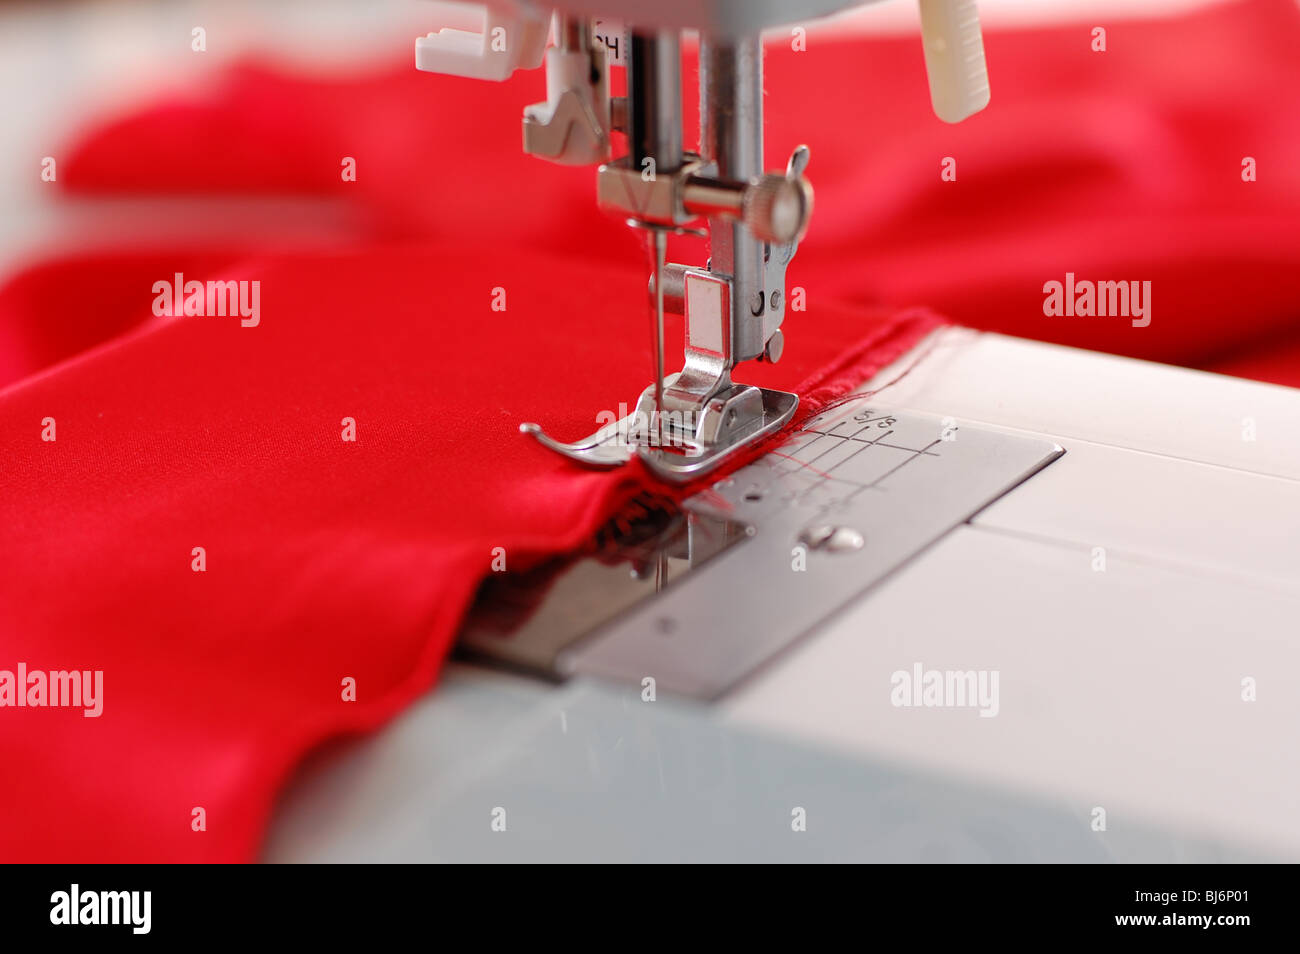 Sewing machine detail with the red thread and cloth - Stock Image